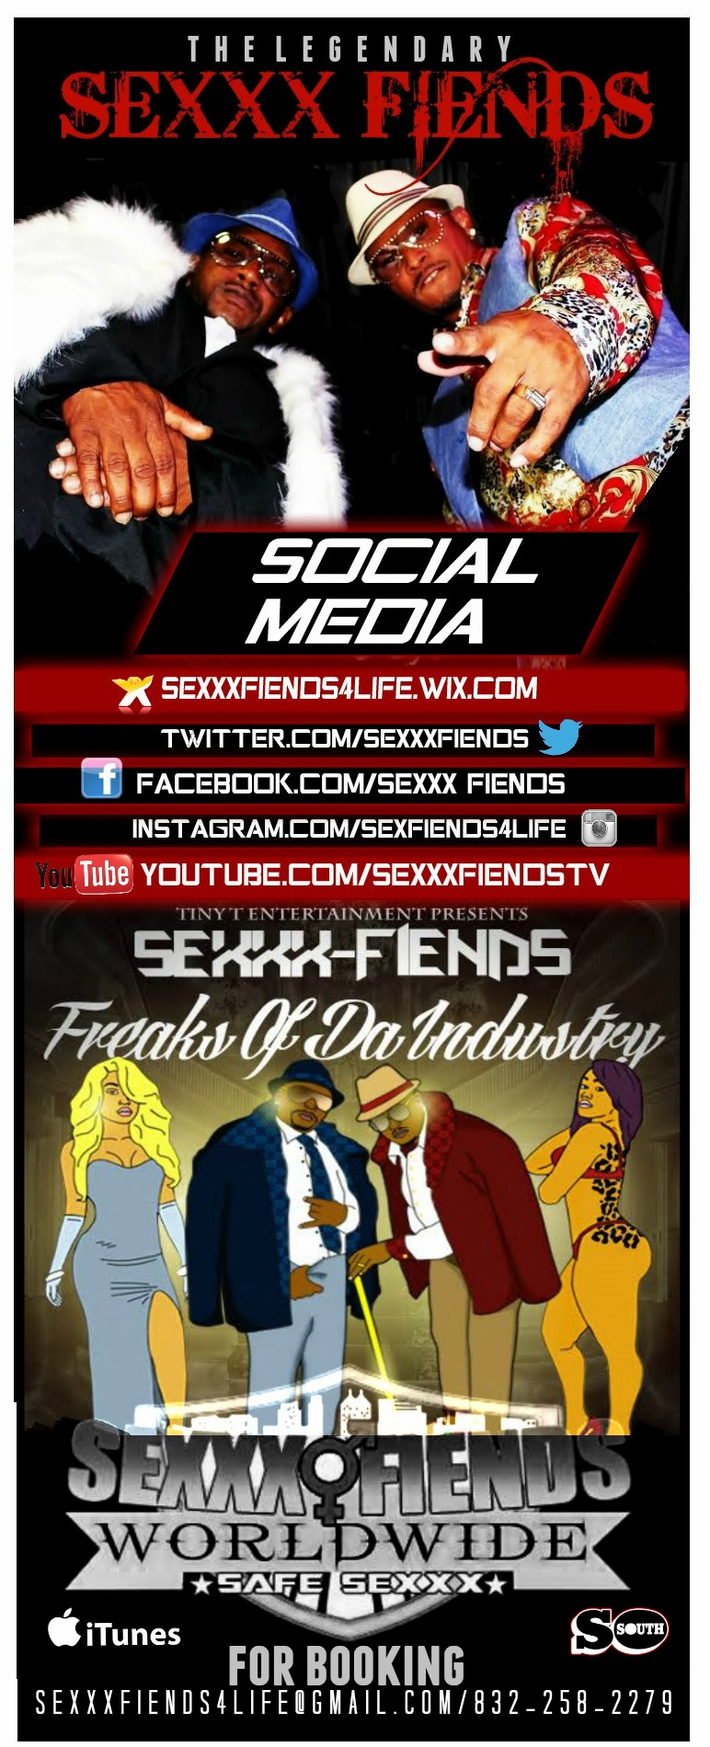 LEGENDARY GROUP SEXXX FIENDS